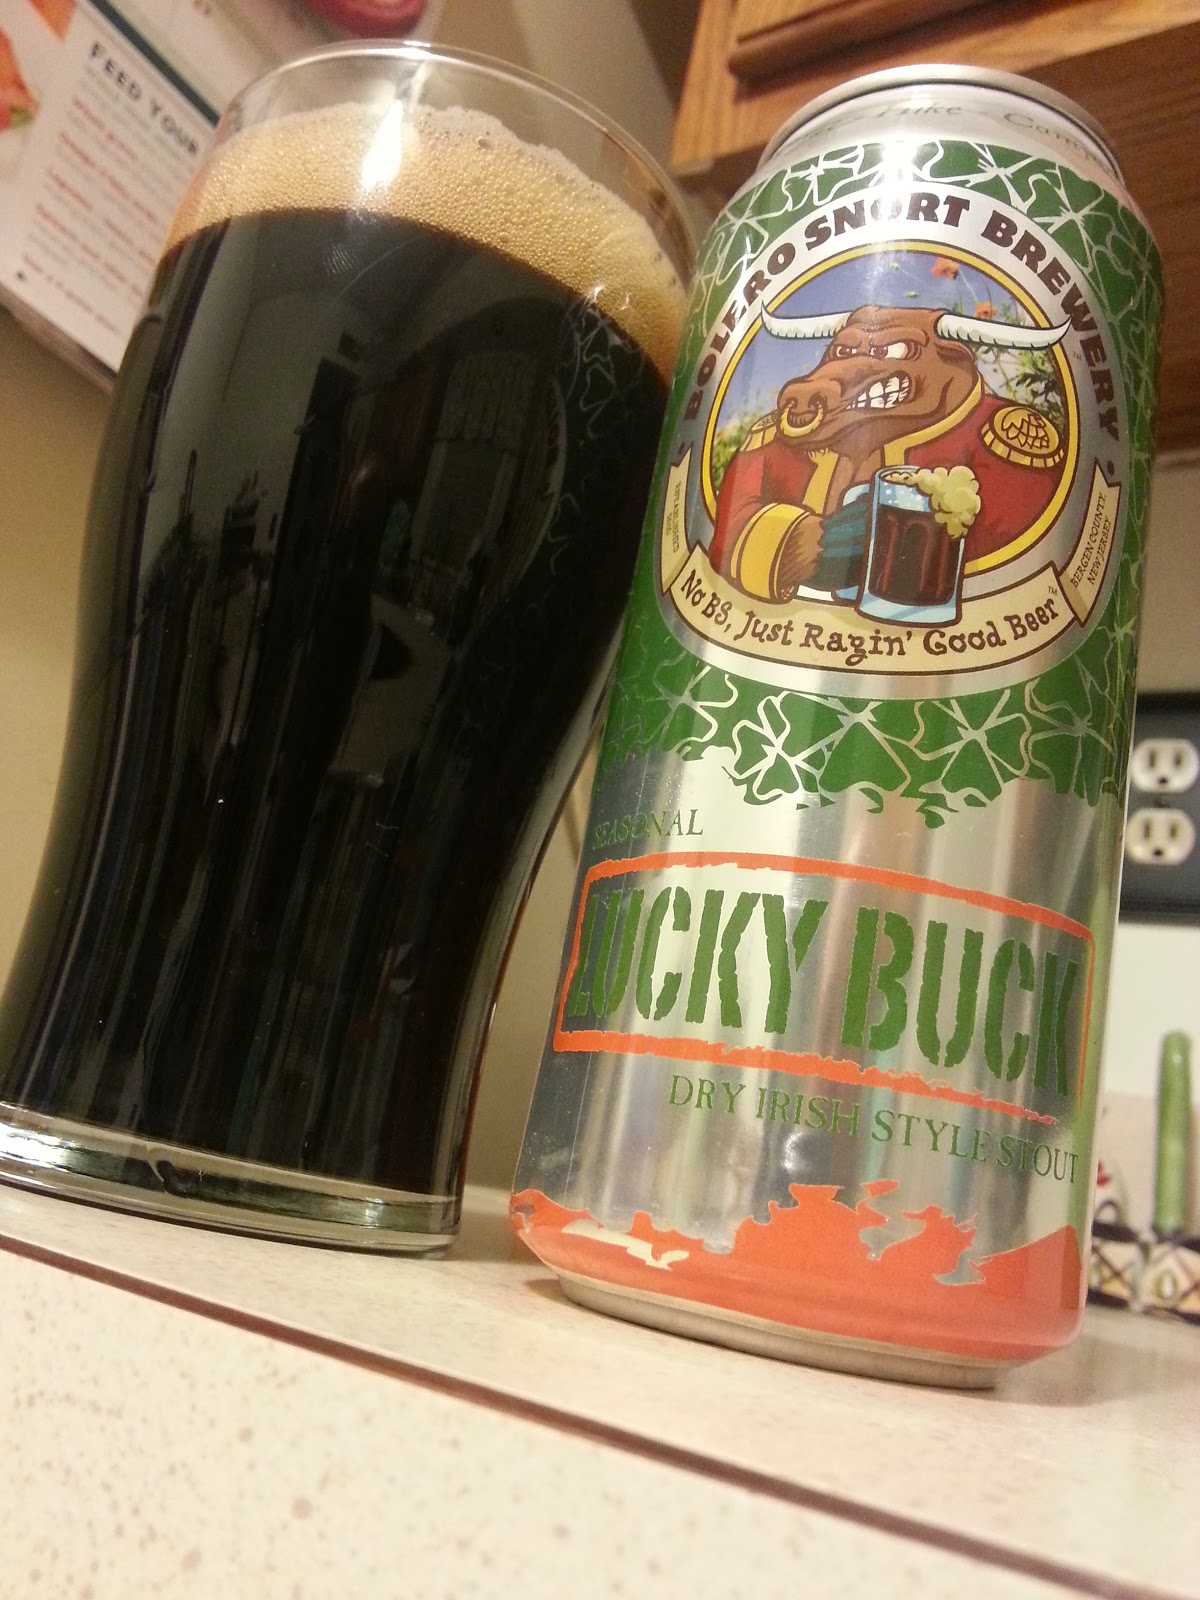 Bolero Snort Brewery, Lucky Buck, Dry Irish Stout, New Jersey Craft Beer